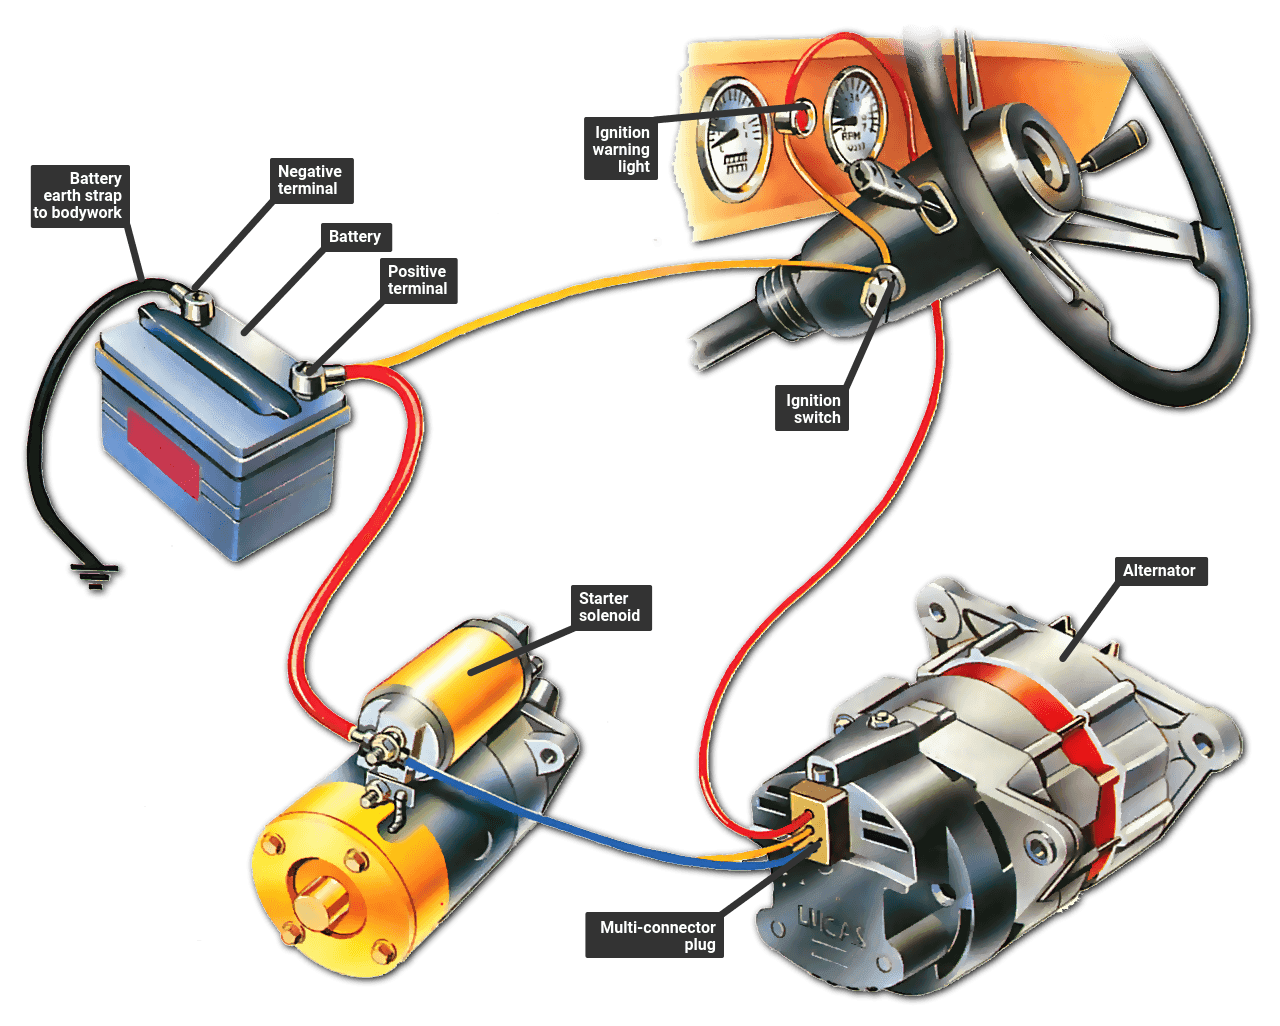 Troubleshooting The Ignition Warning Light How A Car Works Wiring Diagram For Switch To